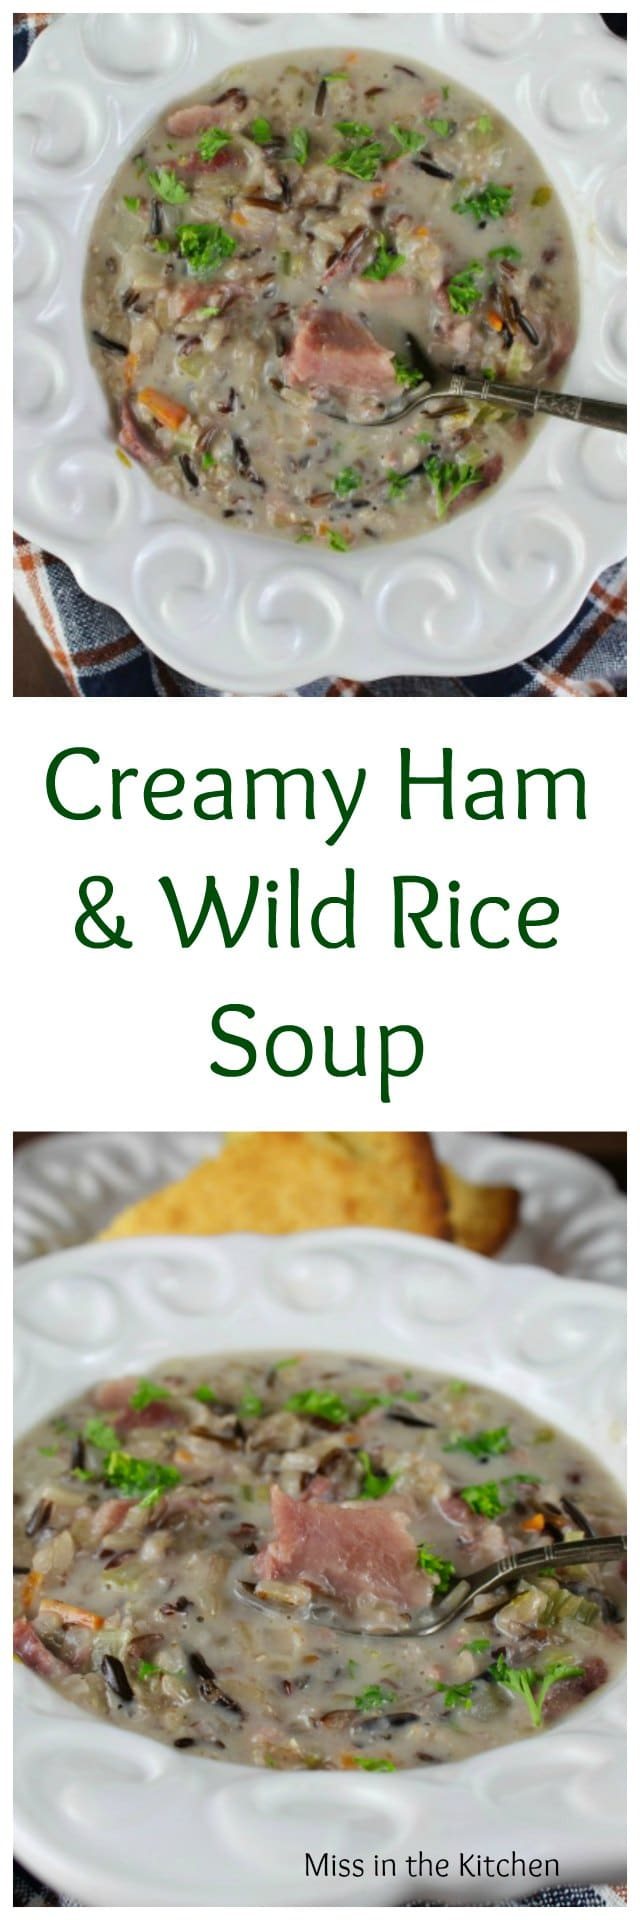 Creamy Ham & Wild Rice Soup Recipe from MissintheKitchen.com Great for leftover holiday ham!